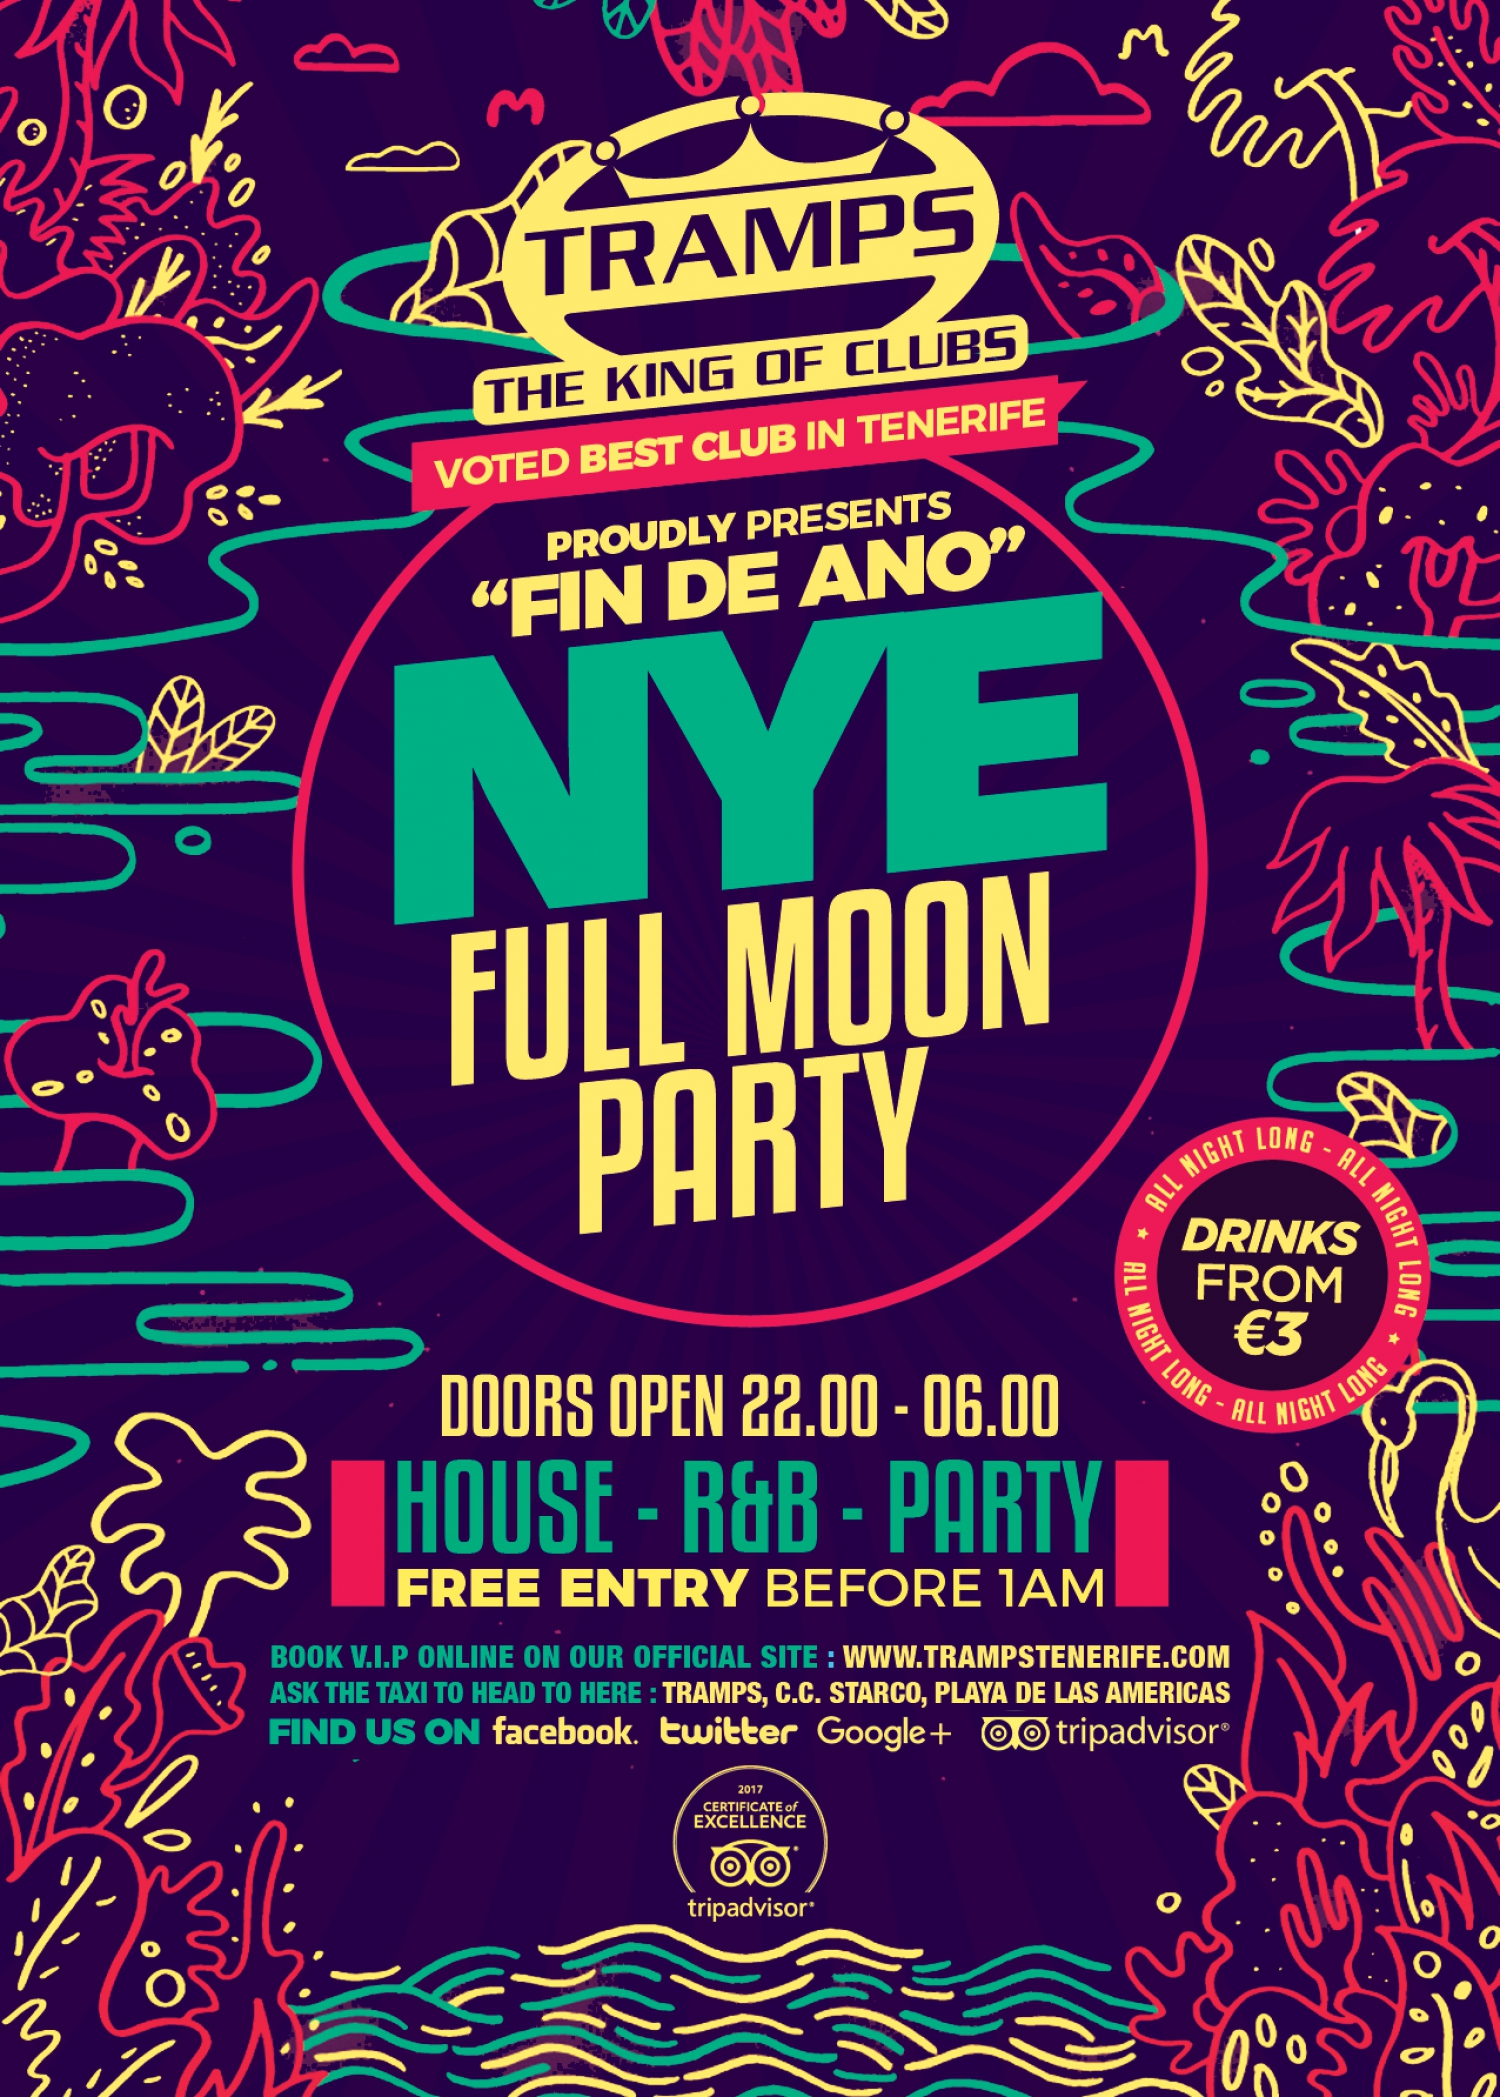 Full Moon Party on New Years Eve